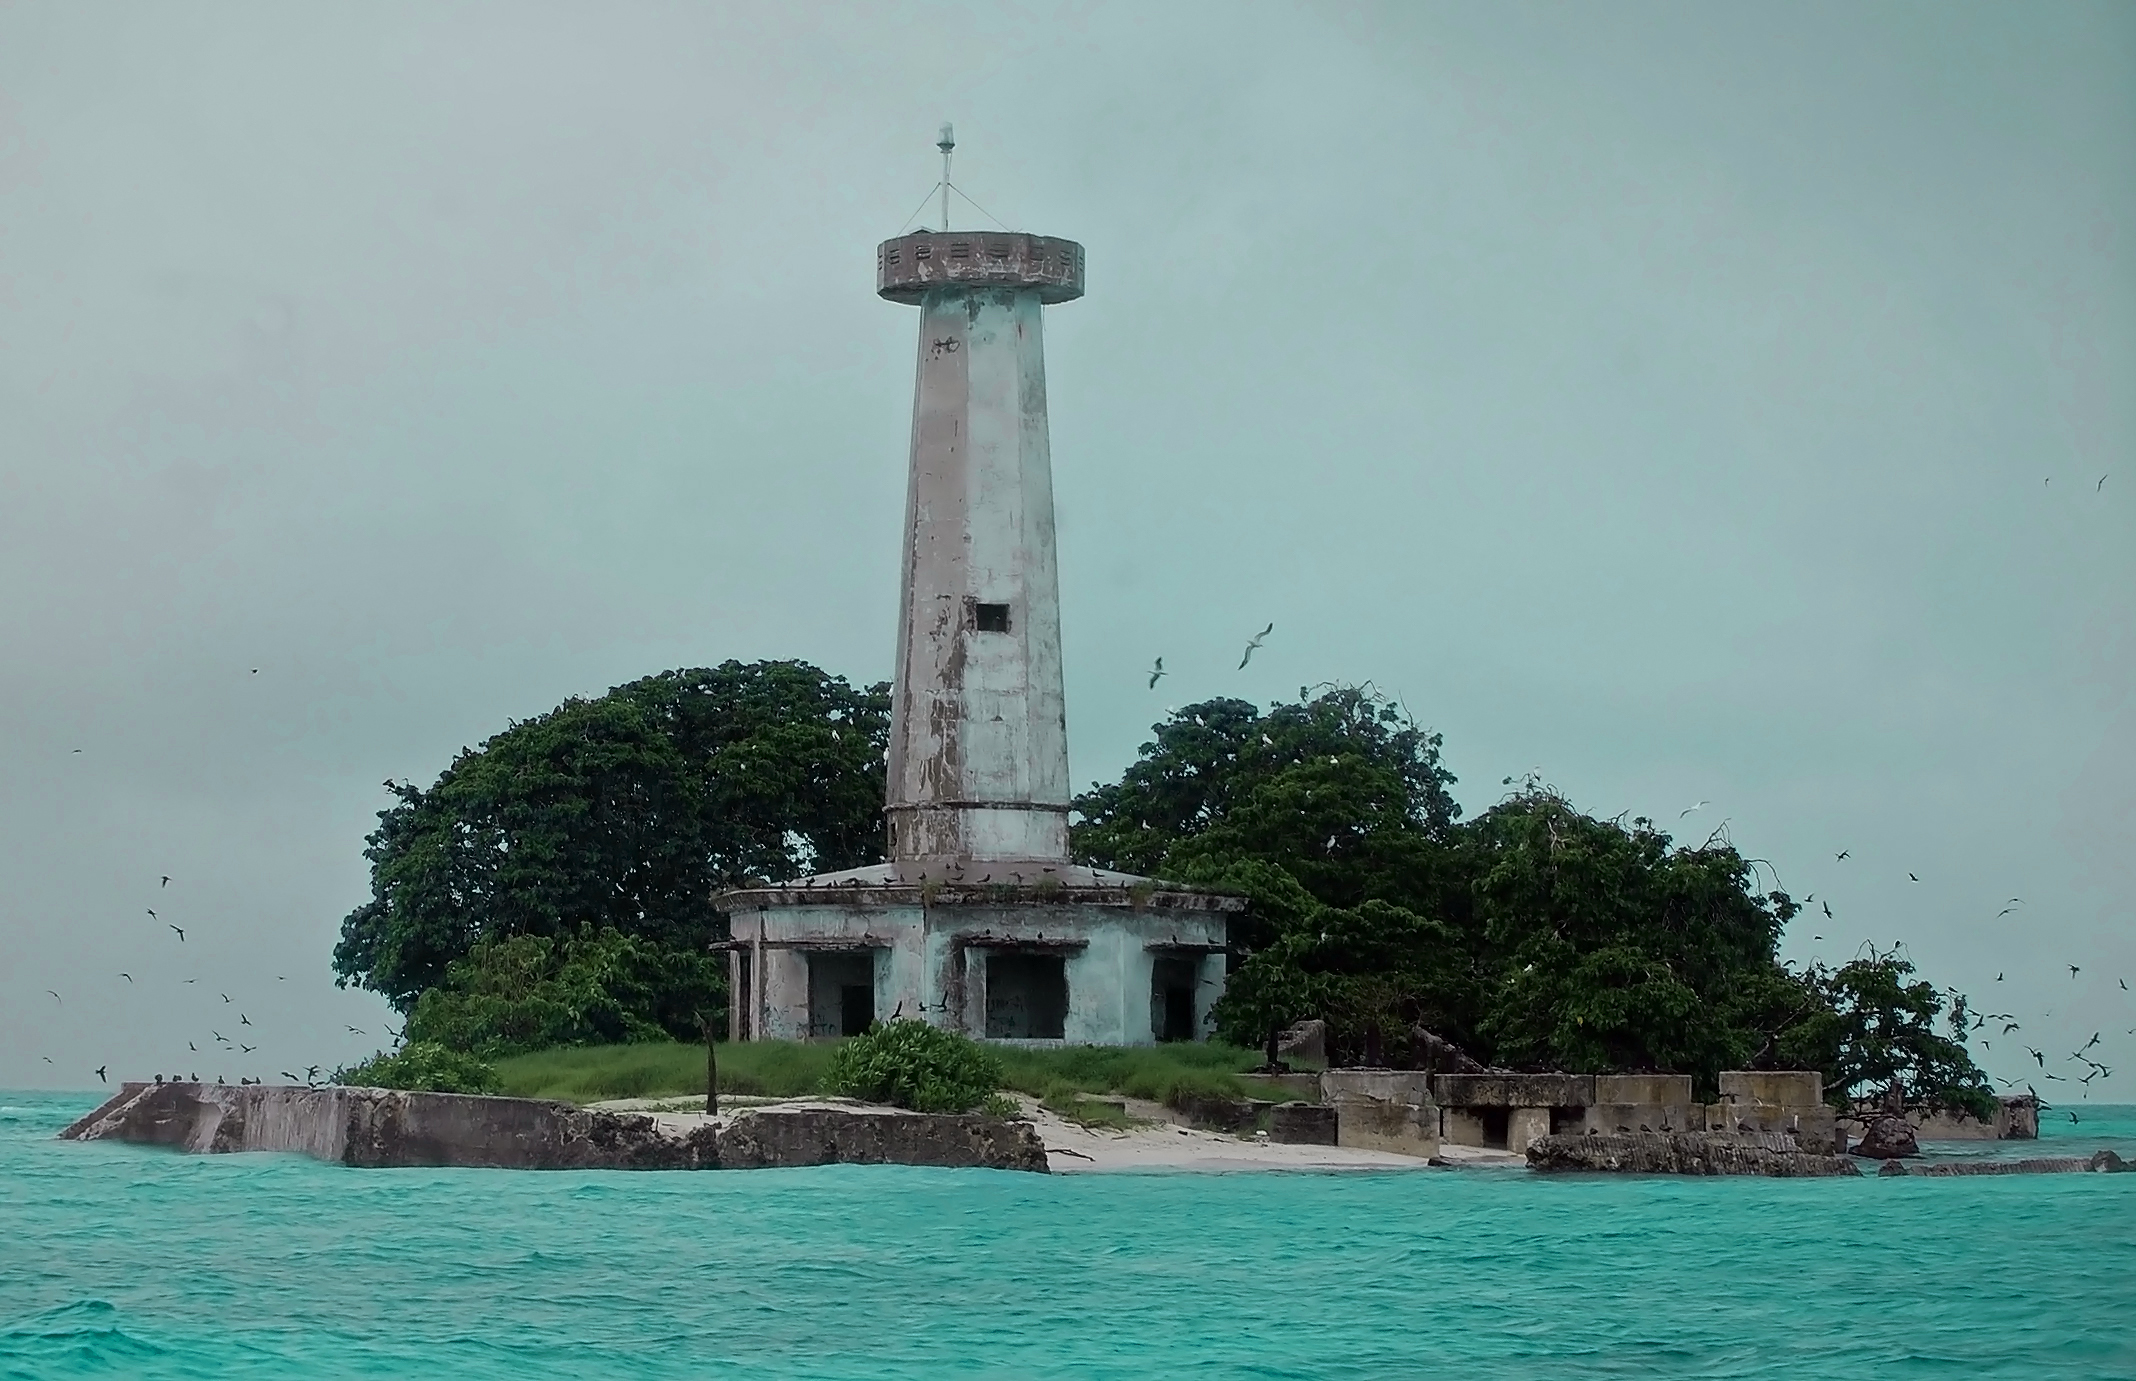 Parola or South Islet has heavier vegetation than its big brother. Up to 8,000 black noddies plus an assortment of other birds inhabit the island. It was here that the USS Guardian ran aground, reportedly due to faulty navigational equipment.  (Photo by Gregg Yan)